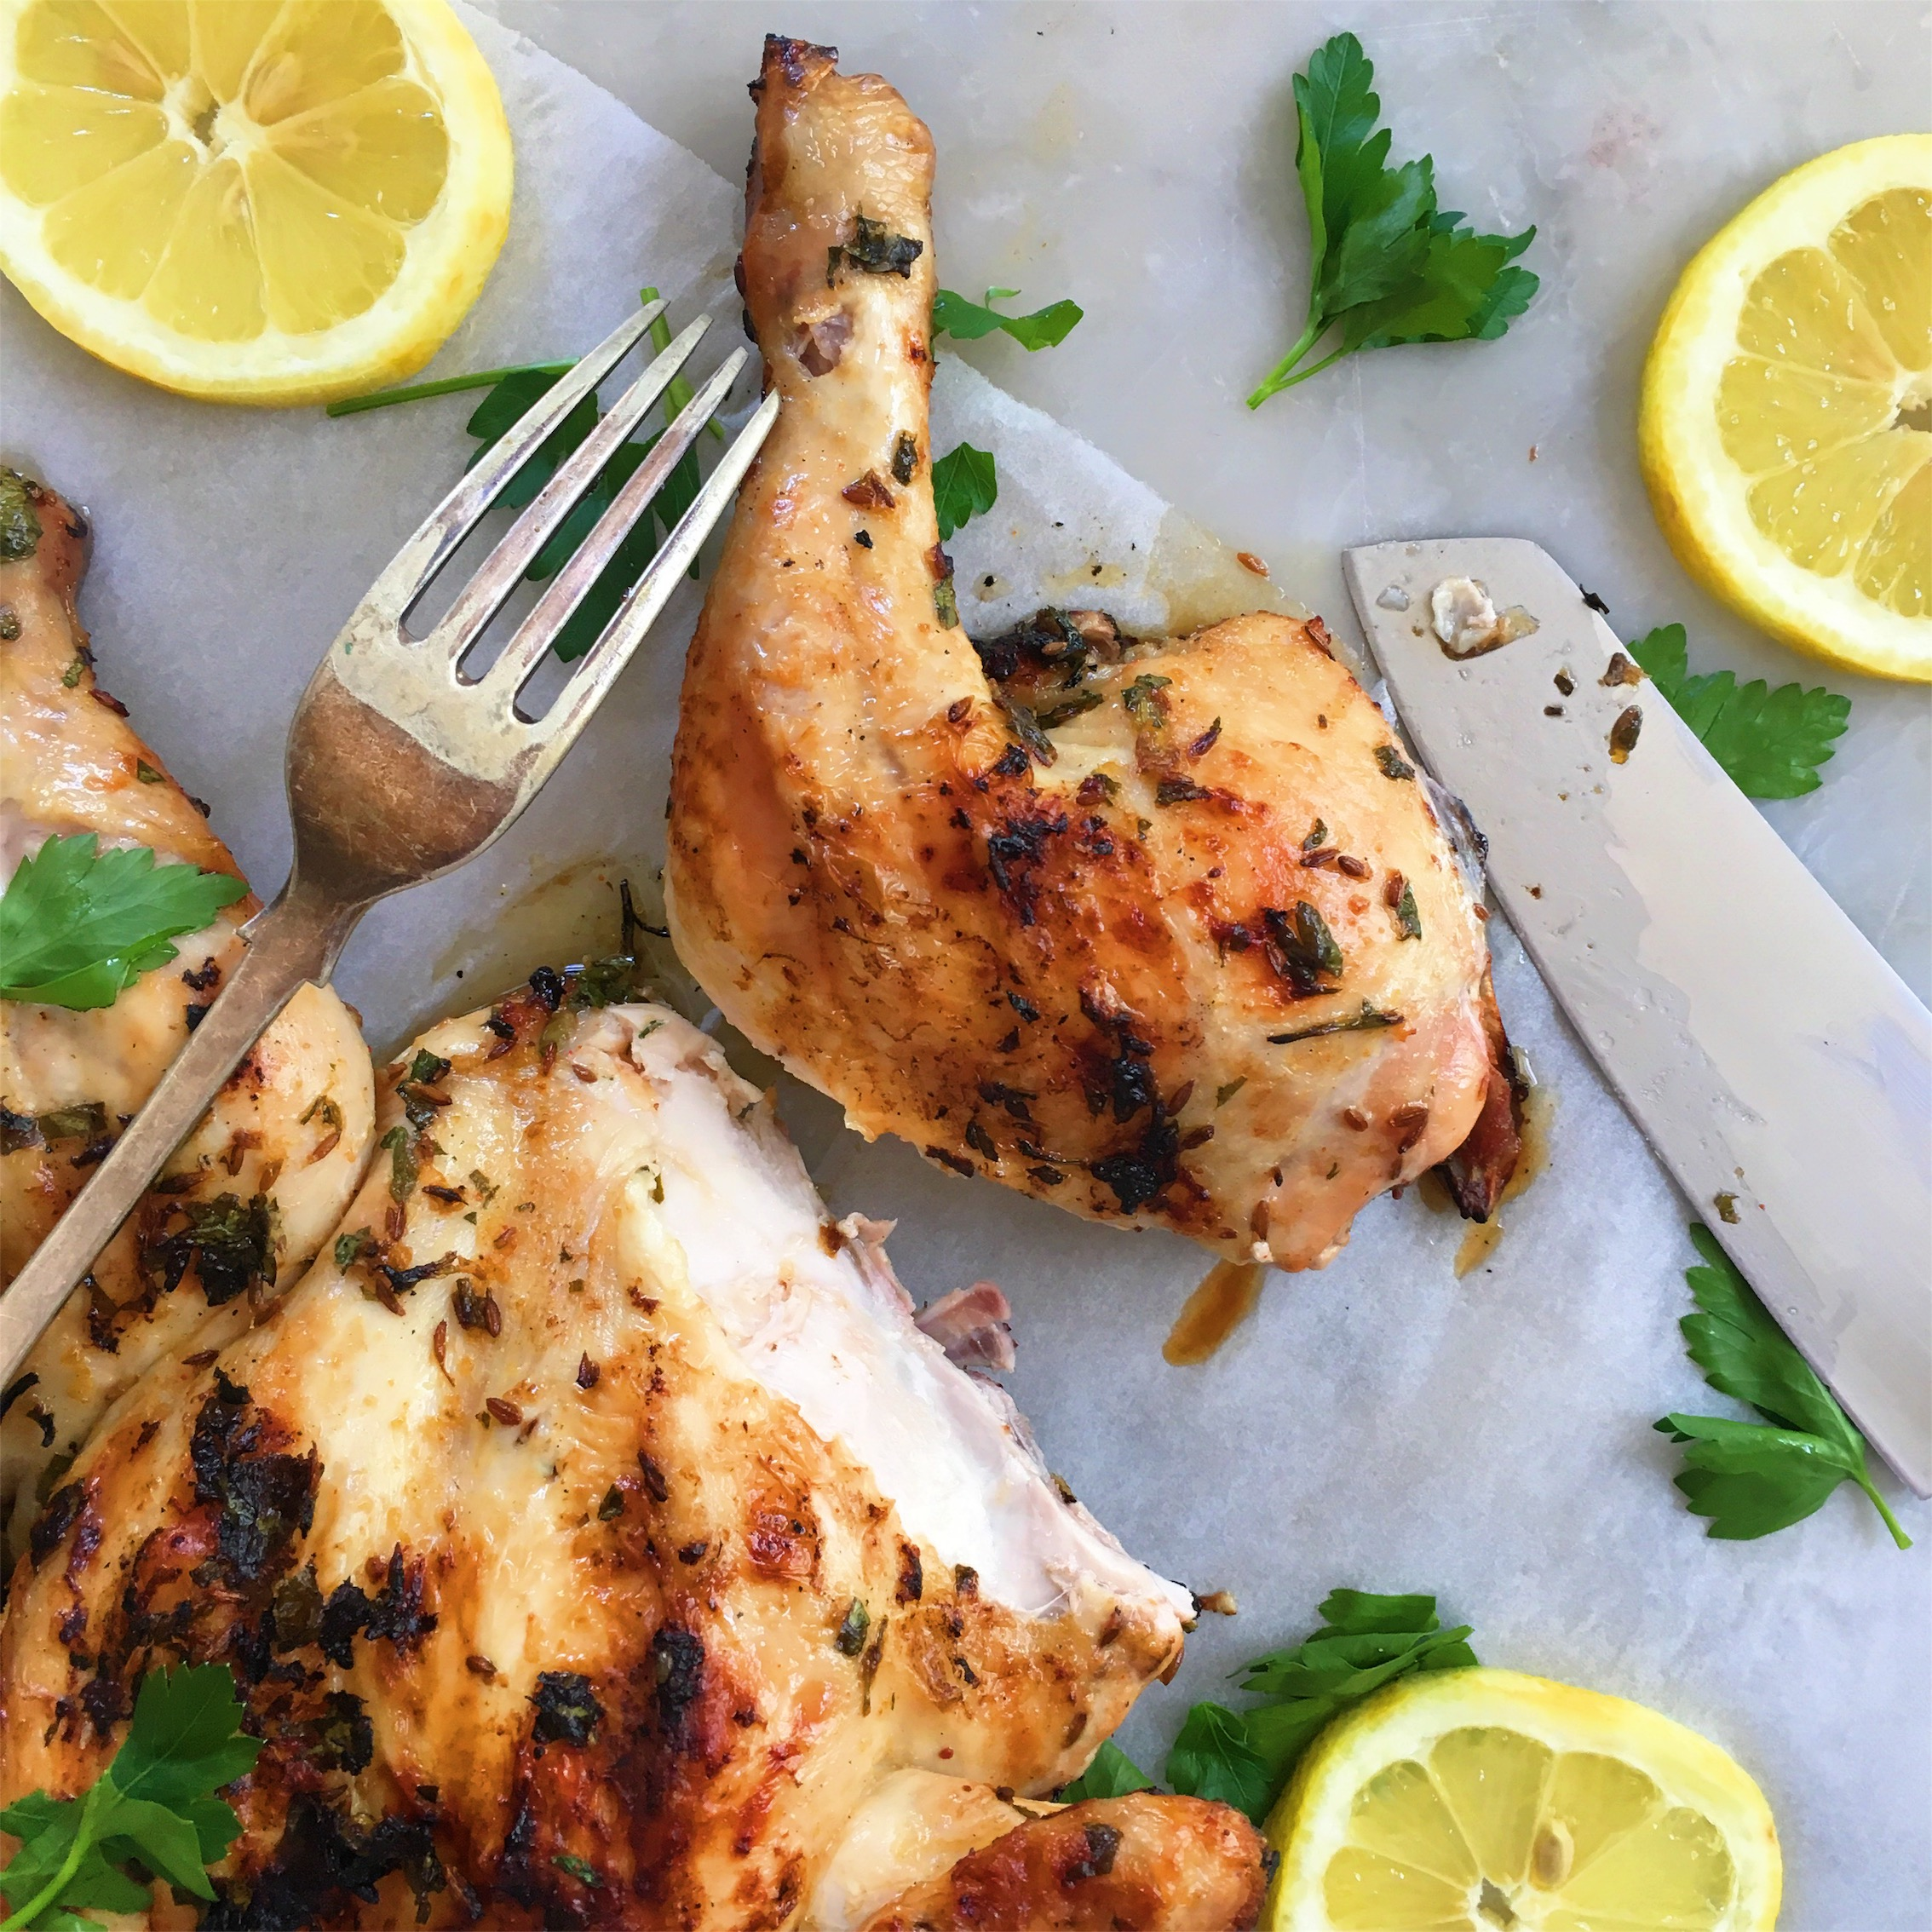 Lemon Parsley And Cumin Barbecued Chicken The Healthy Hunter